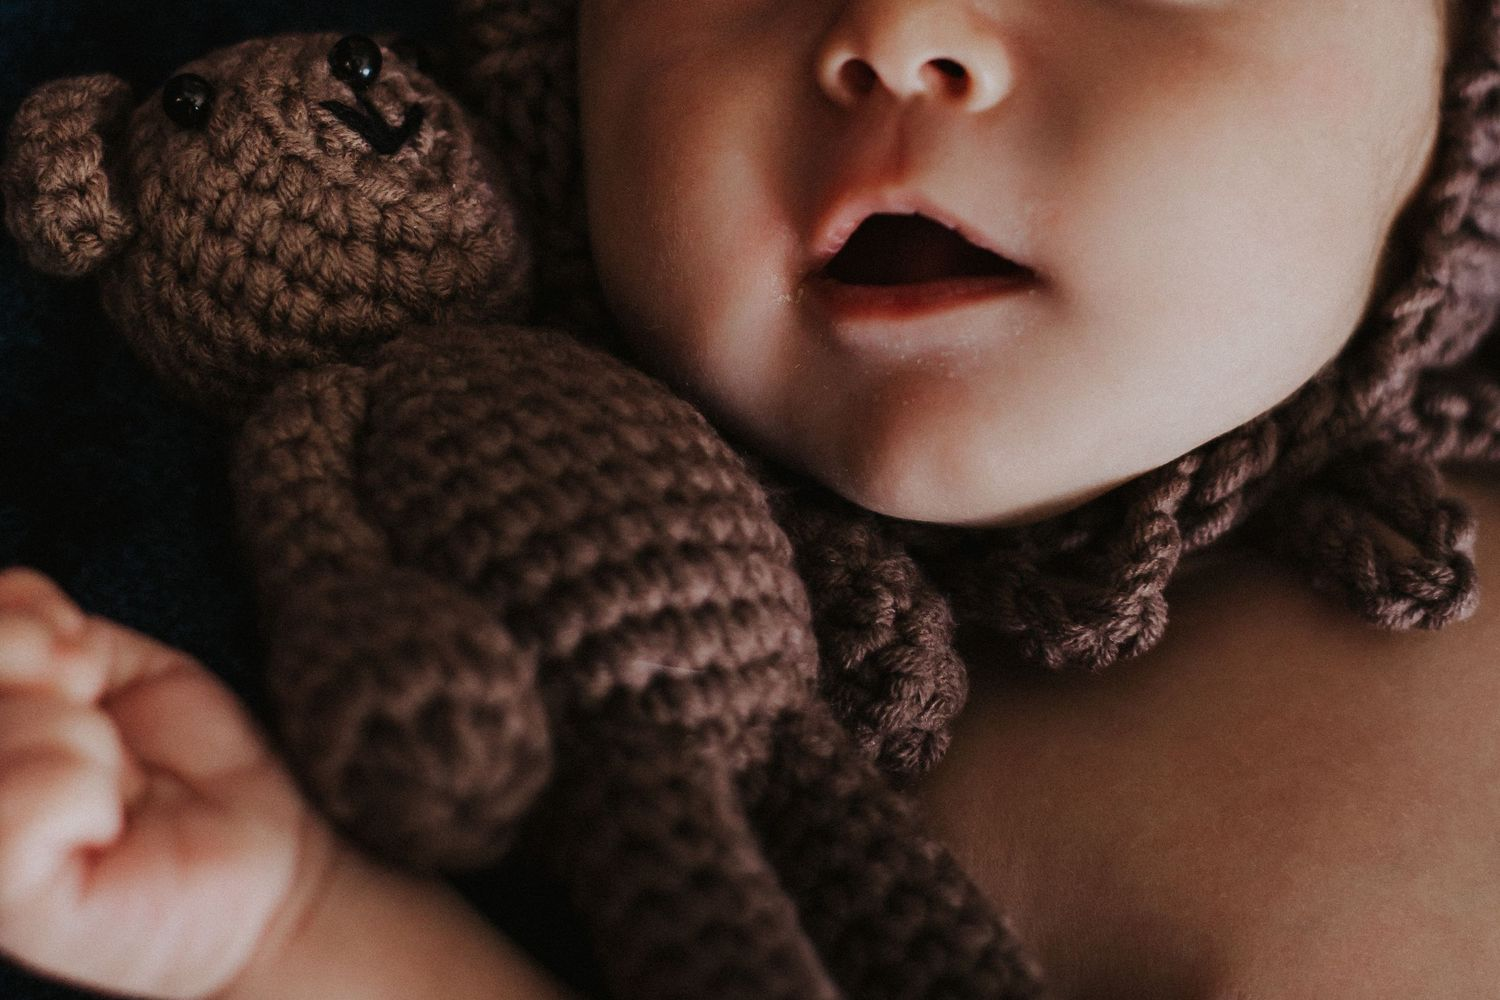 baby boy cuddles close to toy bear